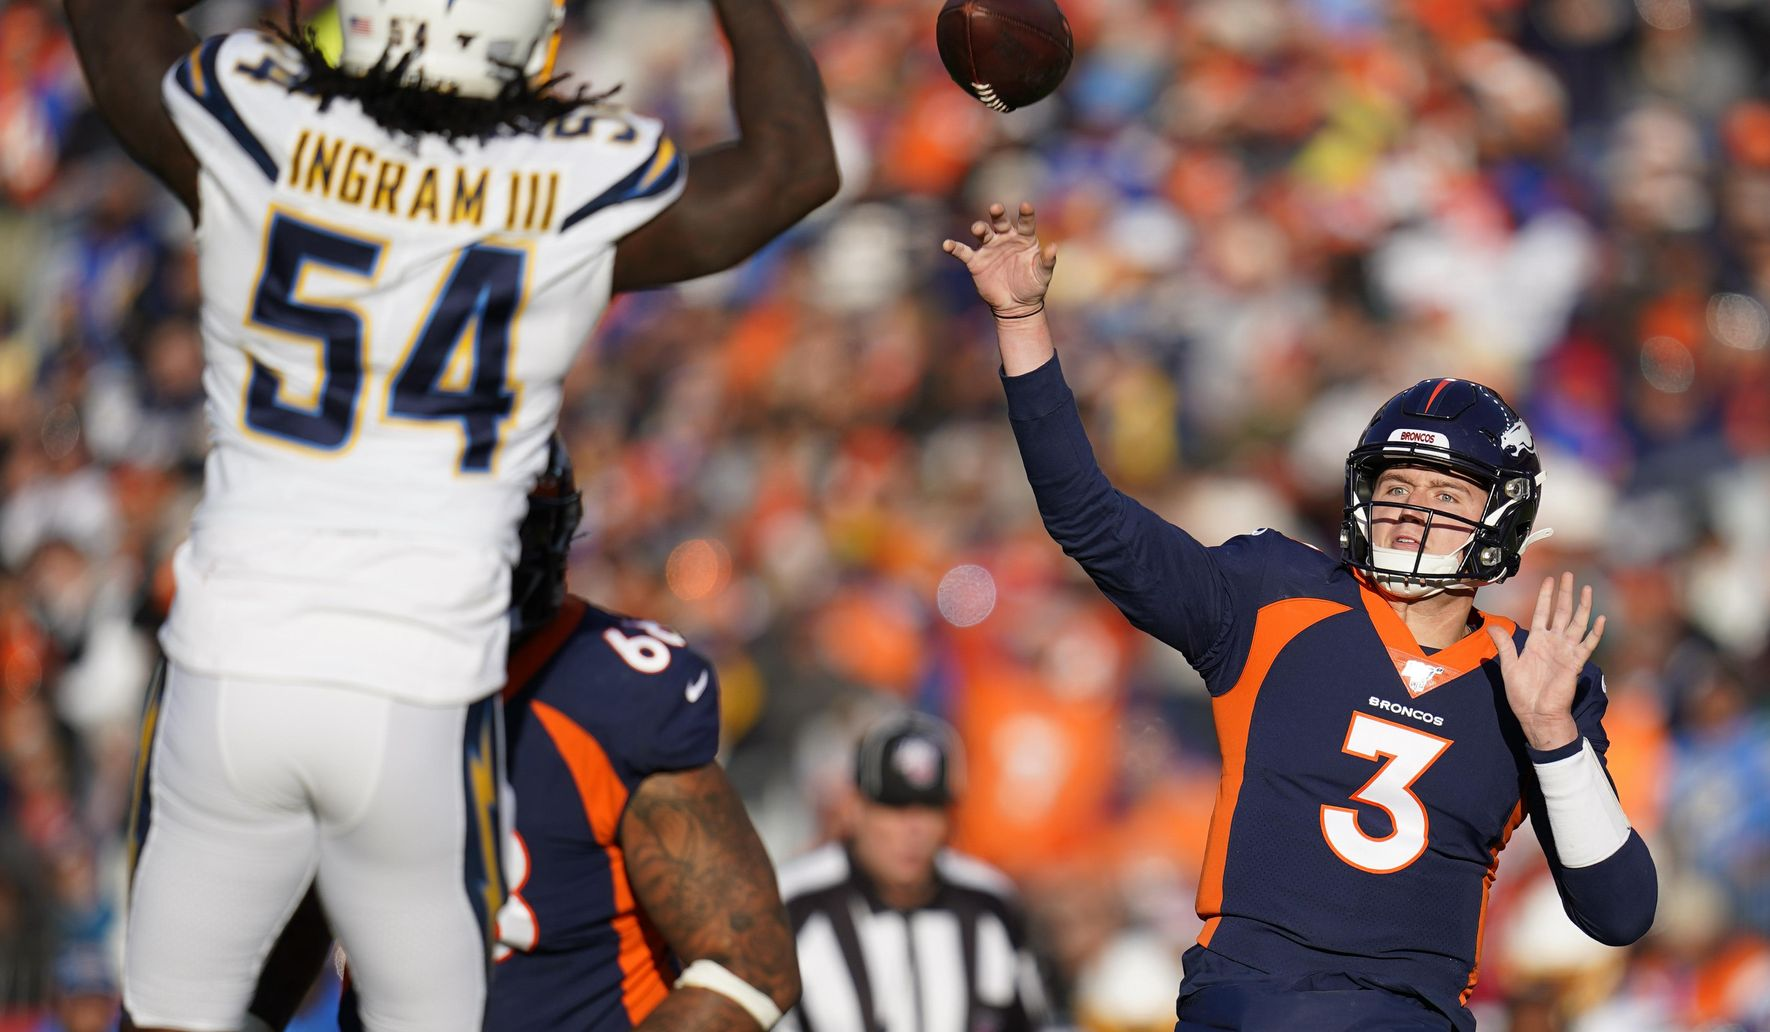 Chargers_broncos_football_13428_c0-177-4238-2647_s1770x1032